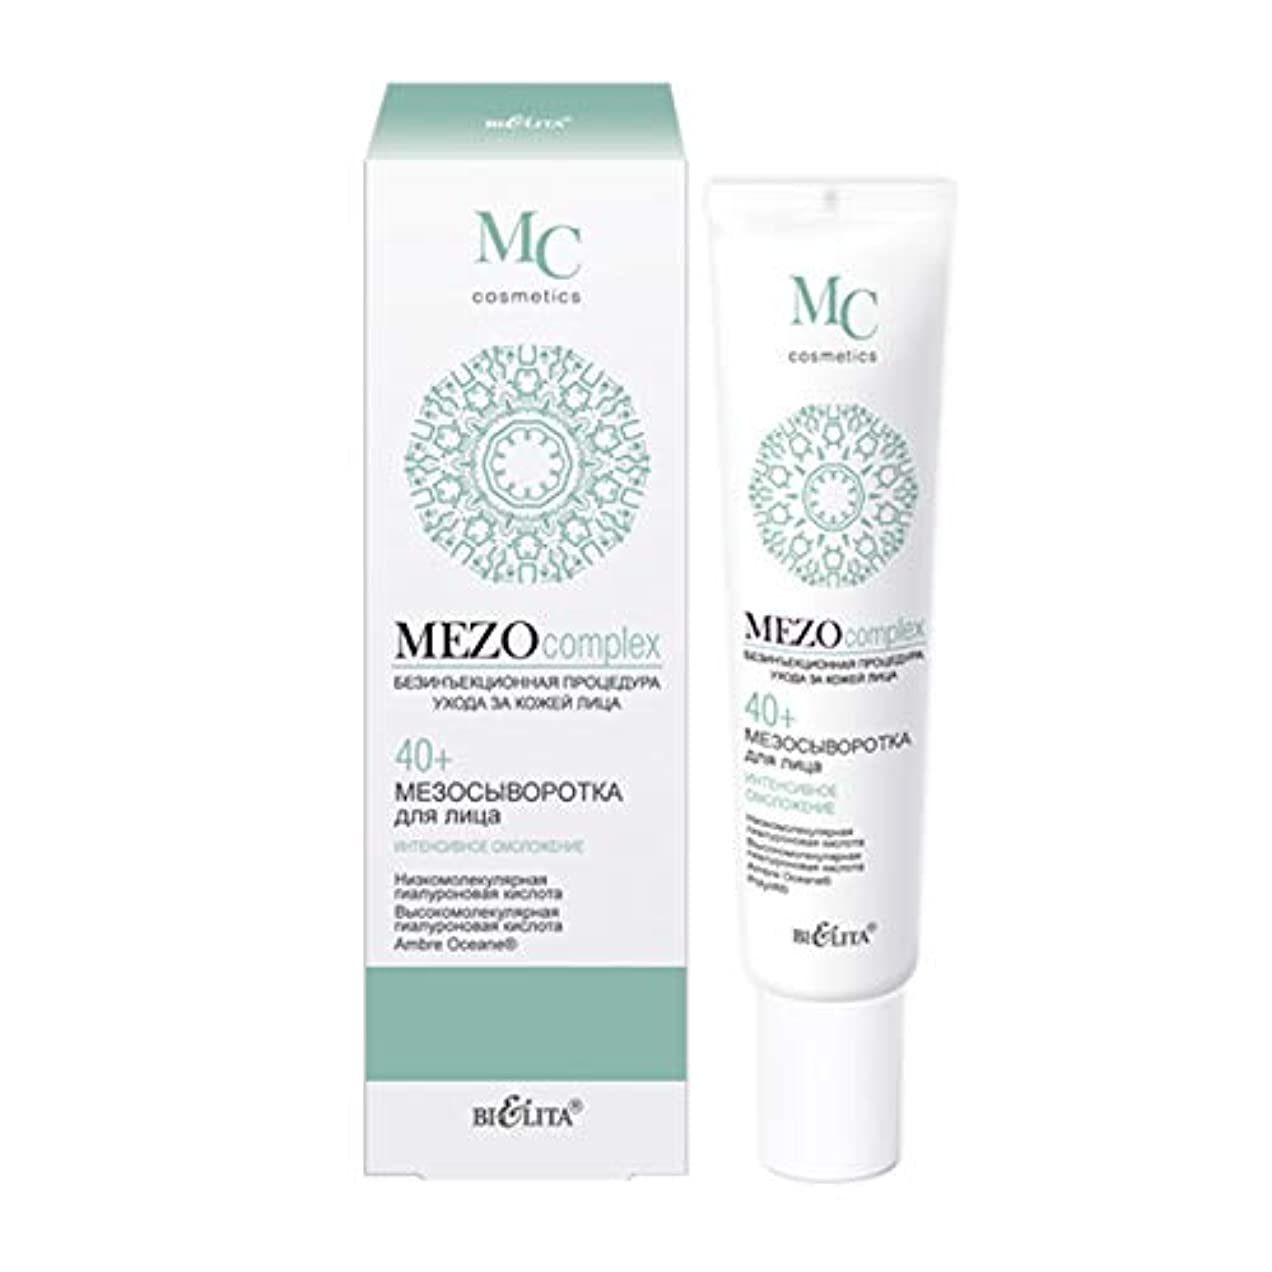 Mezo complex Serum Intensive Rejuvenation 40+ | Non-injection facial skin care procedure | Ambre Oceane | Polylift...